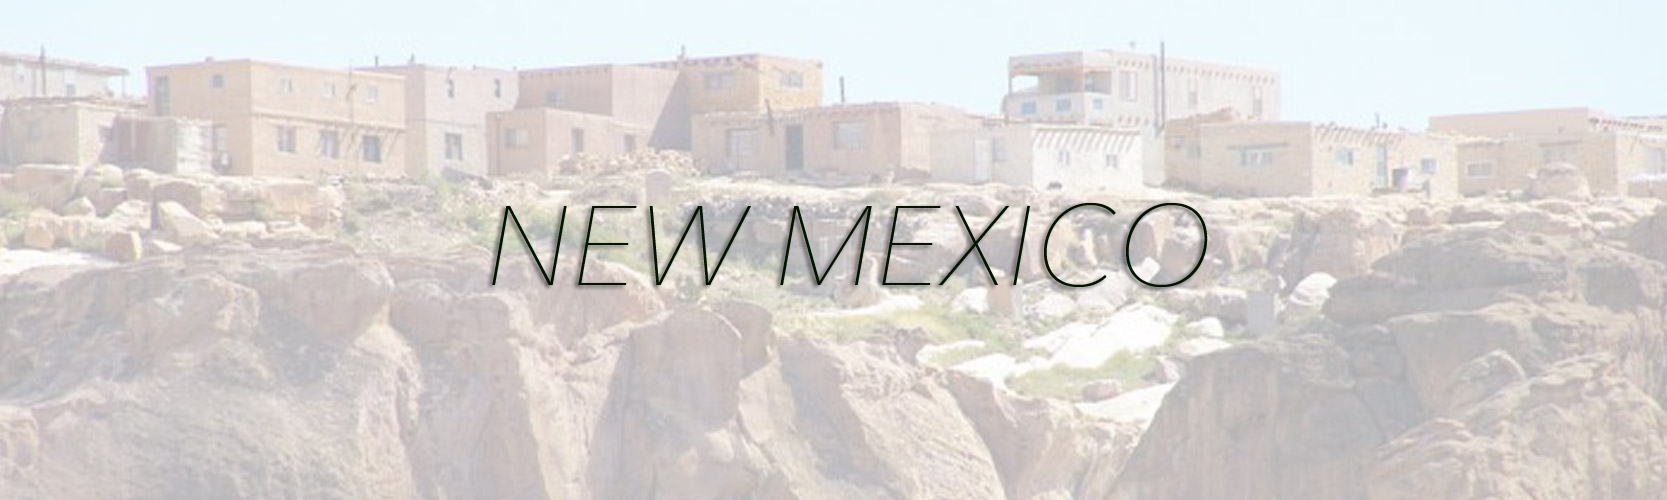 Shipping Futons, Sofa Beds, and Other Futon Shop products to New Mexico